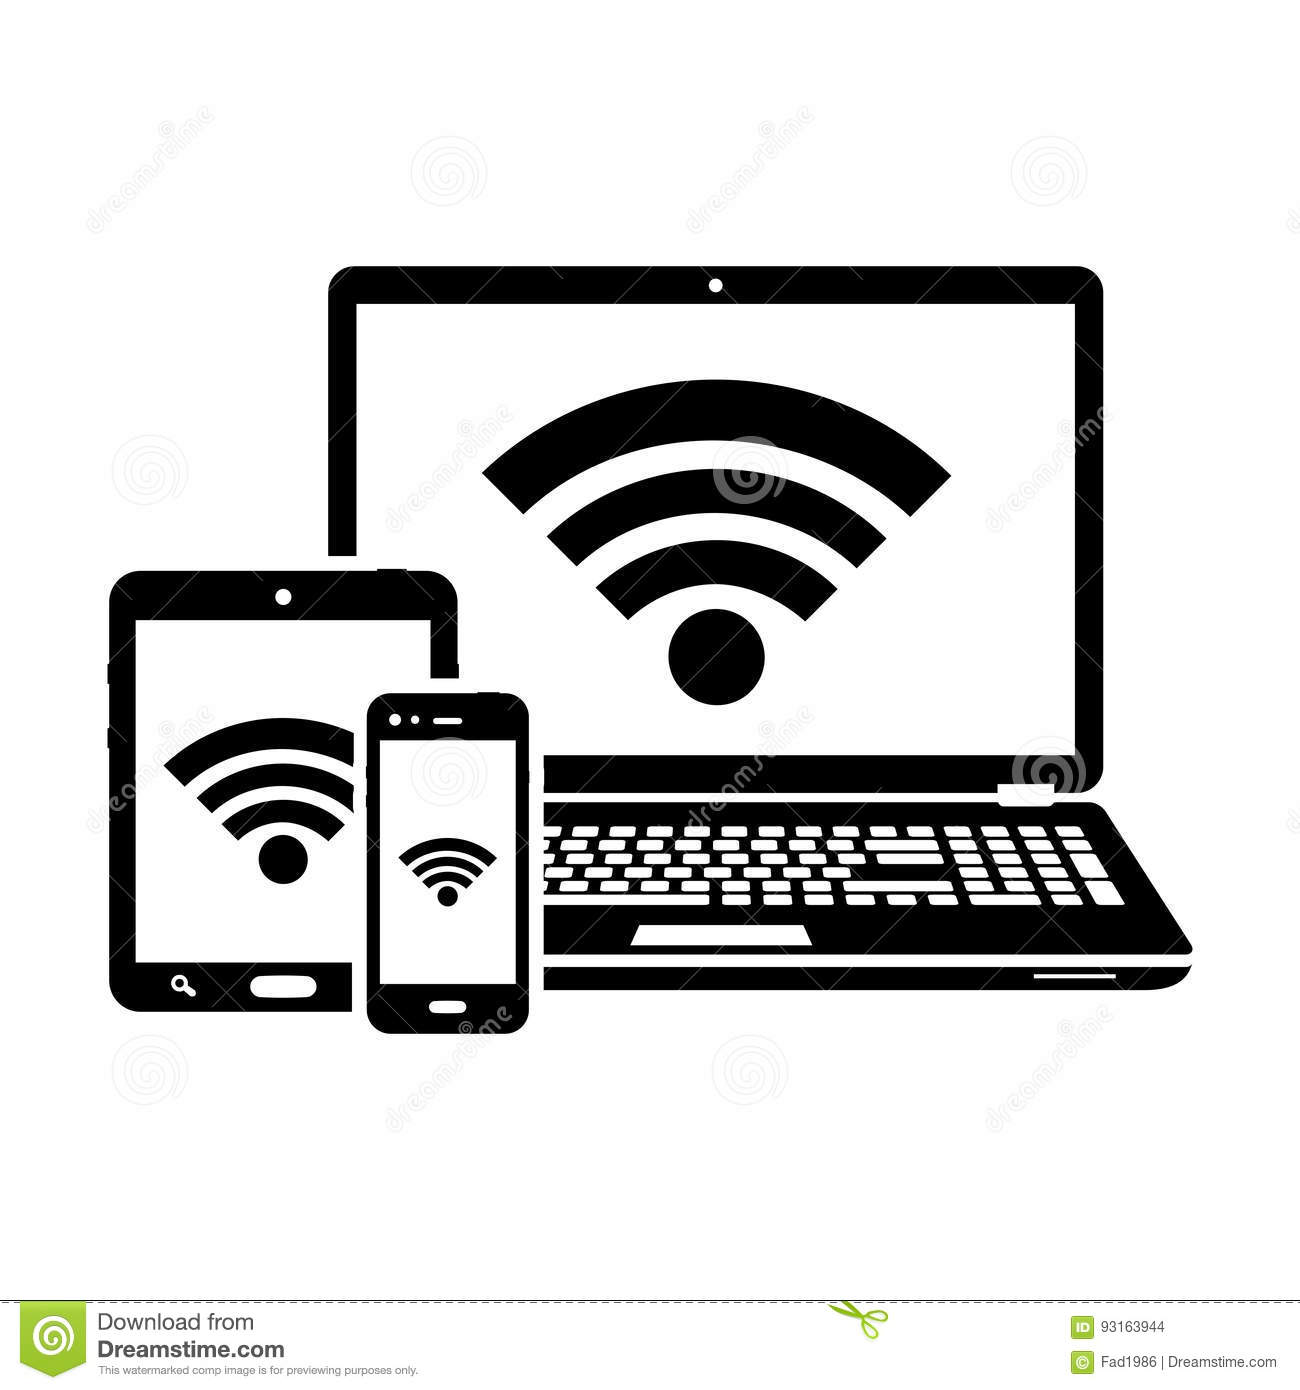 Laptop tablet and smartphone icons with wifi internet connection laptop tablet and smartphone icons with wifi internet connection symbol biocorpaavc